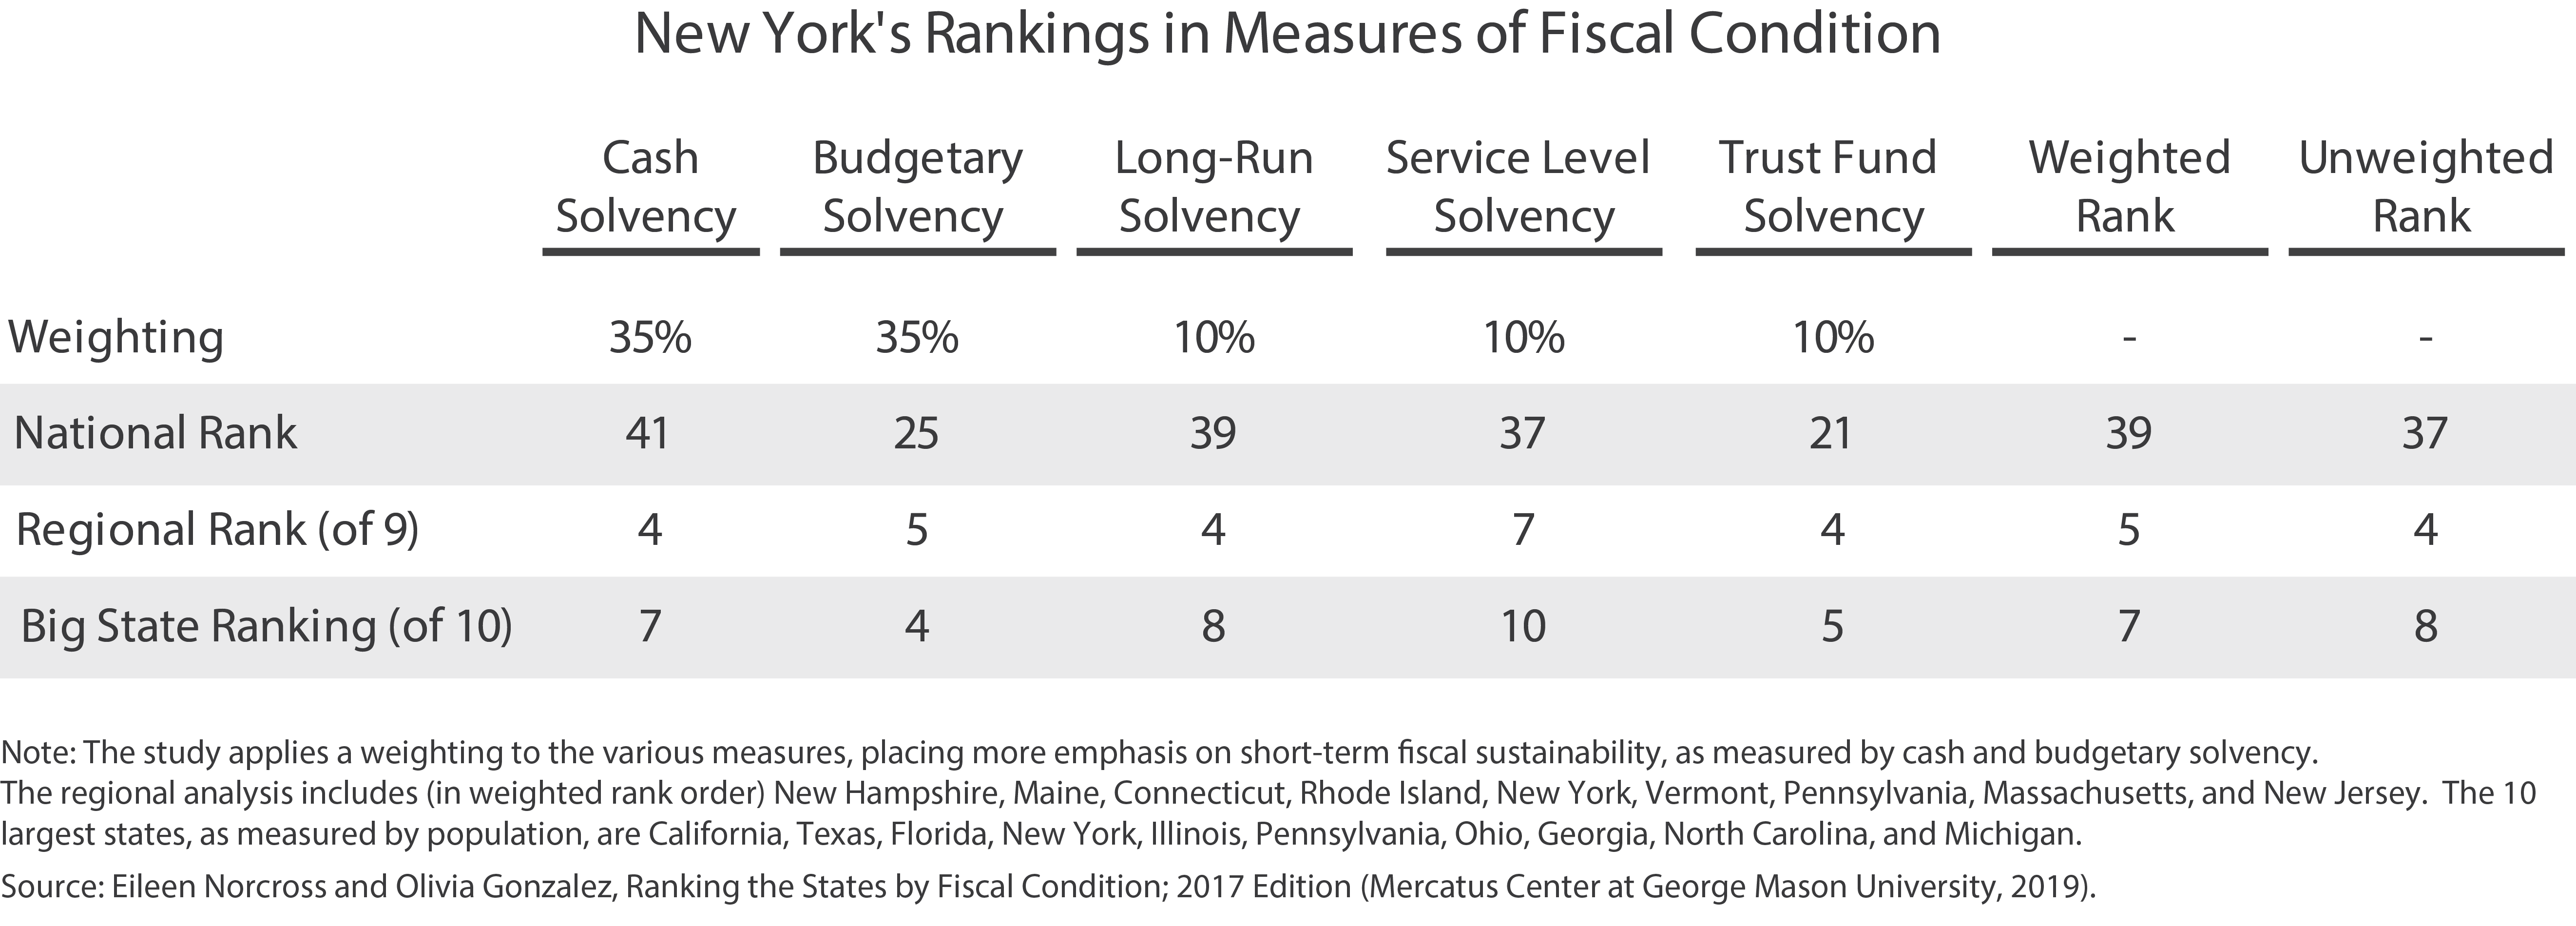 New York's Rankings in Measures of Fiscal Condition